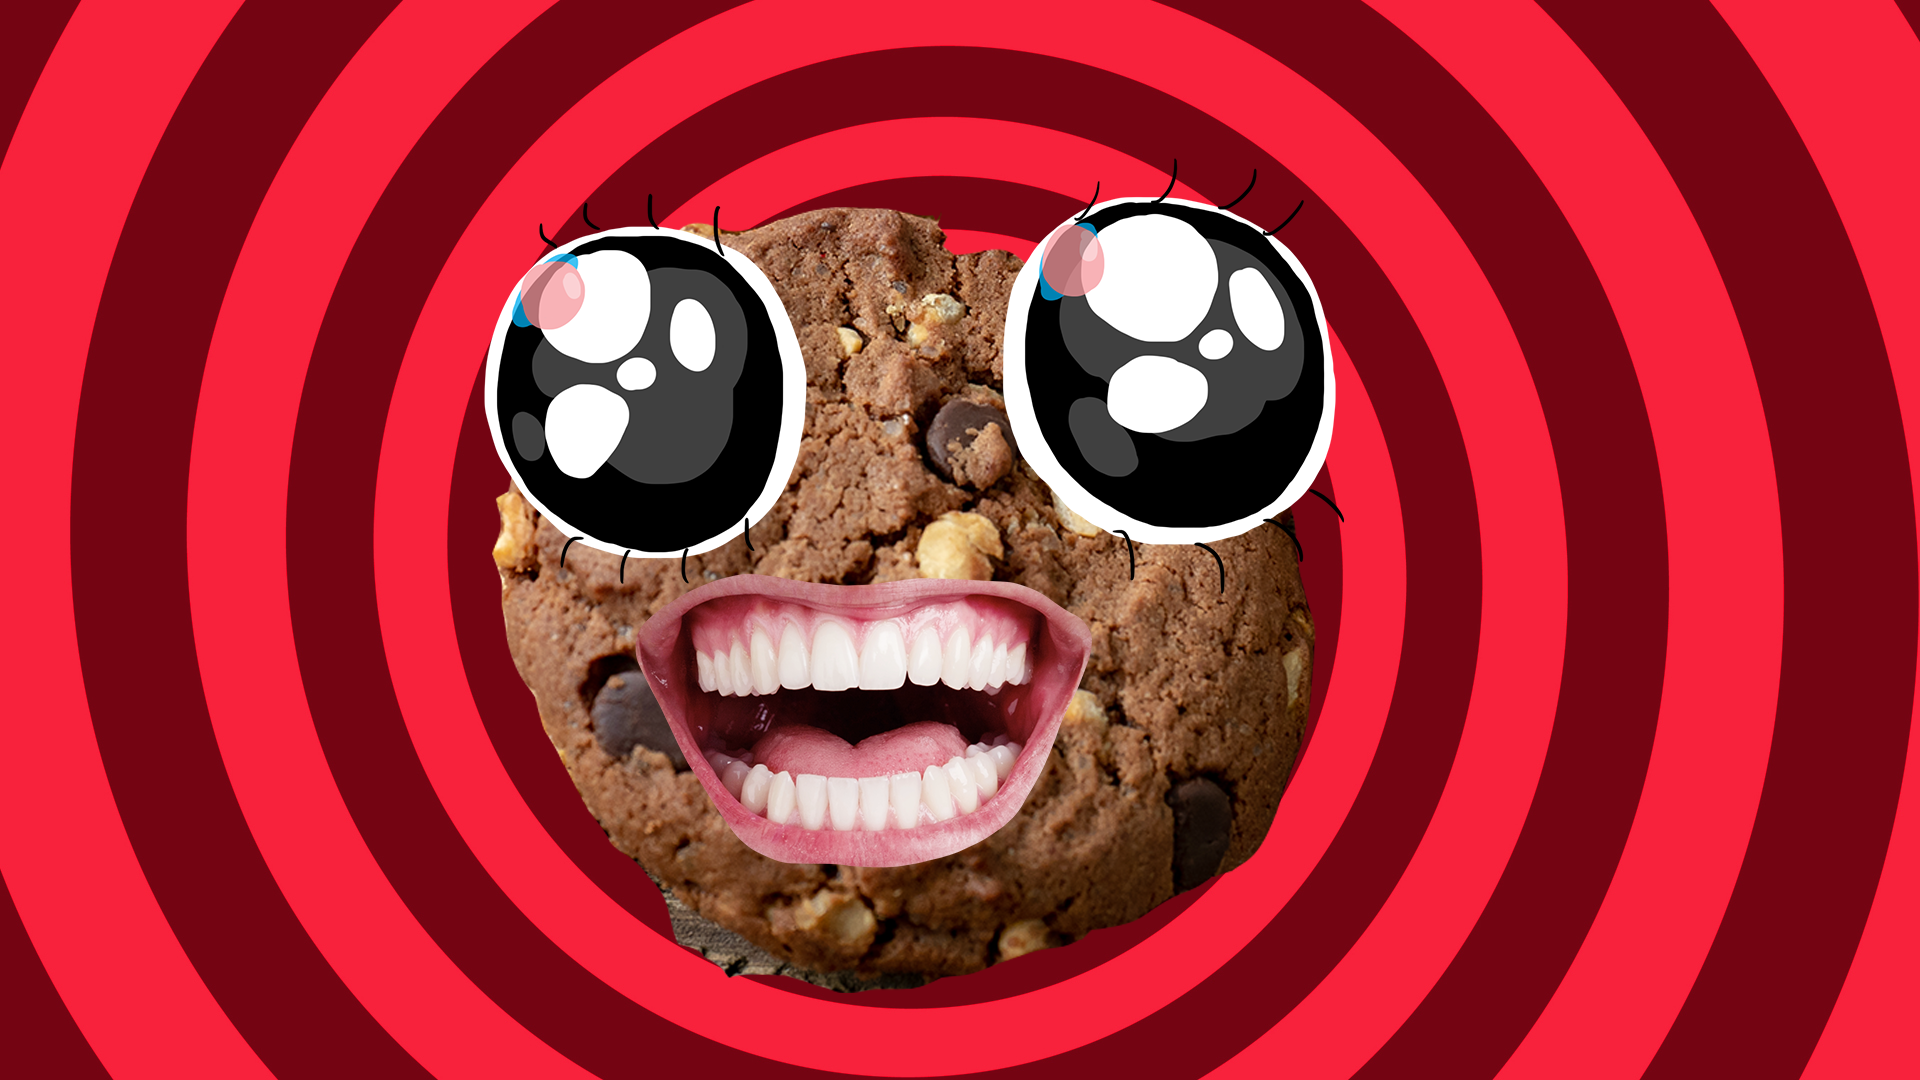 Grinning chocolate cookie